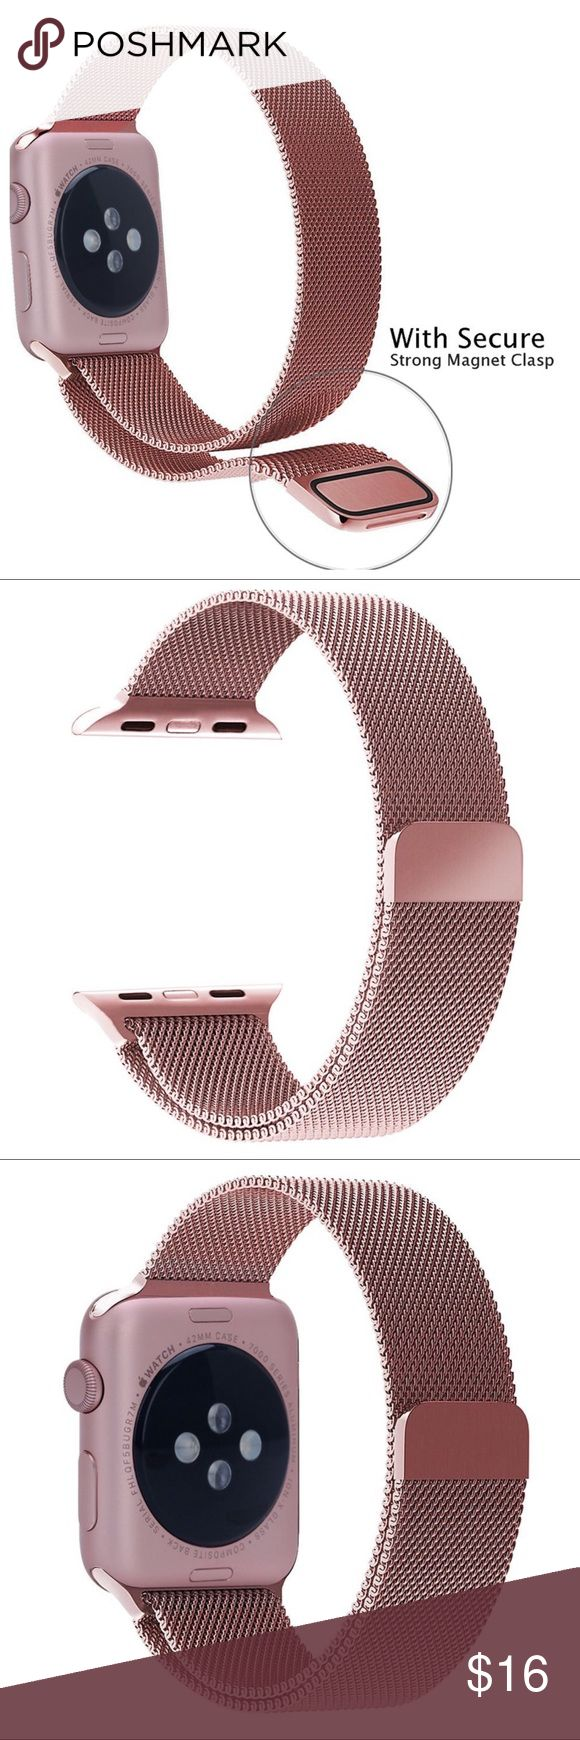 APPLE WATCH ROSE GOLD REPLACEMENT BAND Apple Watch Milanese Loop Stainless Steel iWatch Band for Apple Watch Series 1 Series 2 Sport Edition with Magnet Lock 38mm-Rose Gold). Unique magnet clasp design, no buckle needed, just stick and lock your watch band easily. Personalize your Apple Watch with this refined strap compared to Apple ones, but at much less price. Durable and elegant stainless steel. Enjoy! Accessories Watches